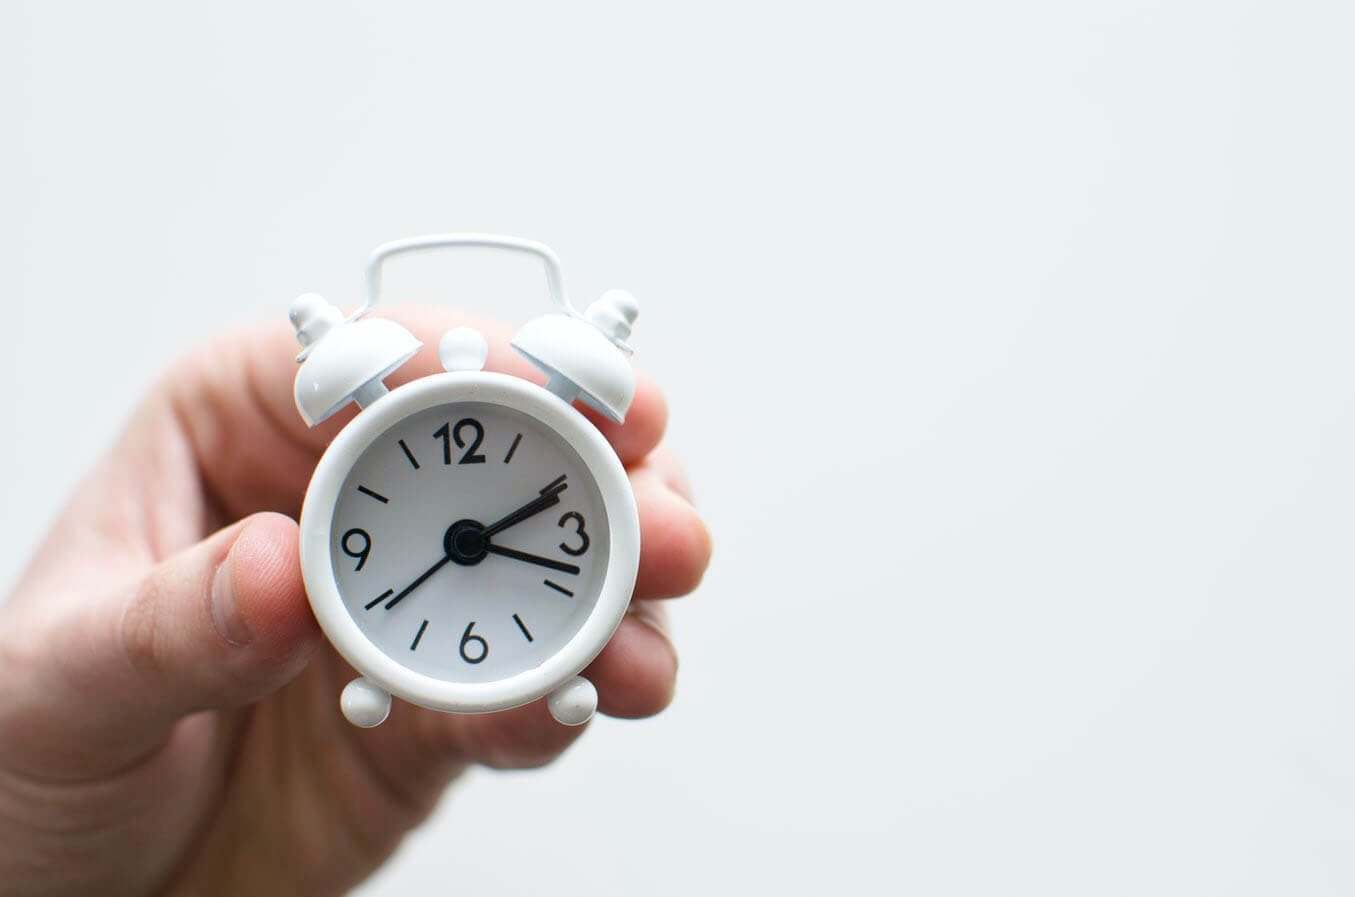 Image of a hand holding a clock